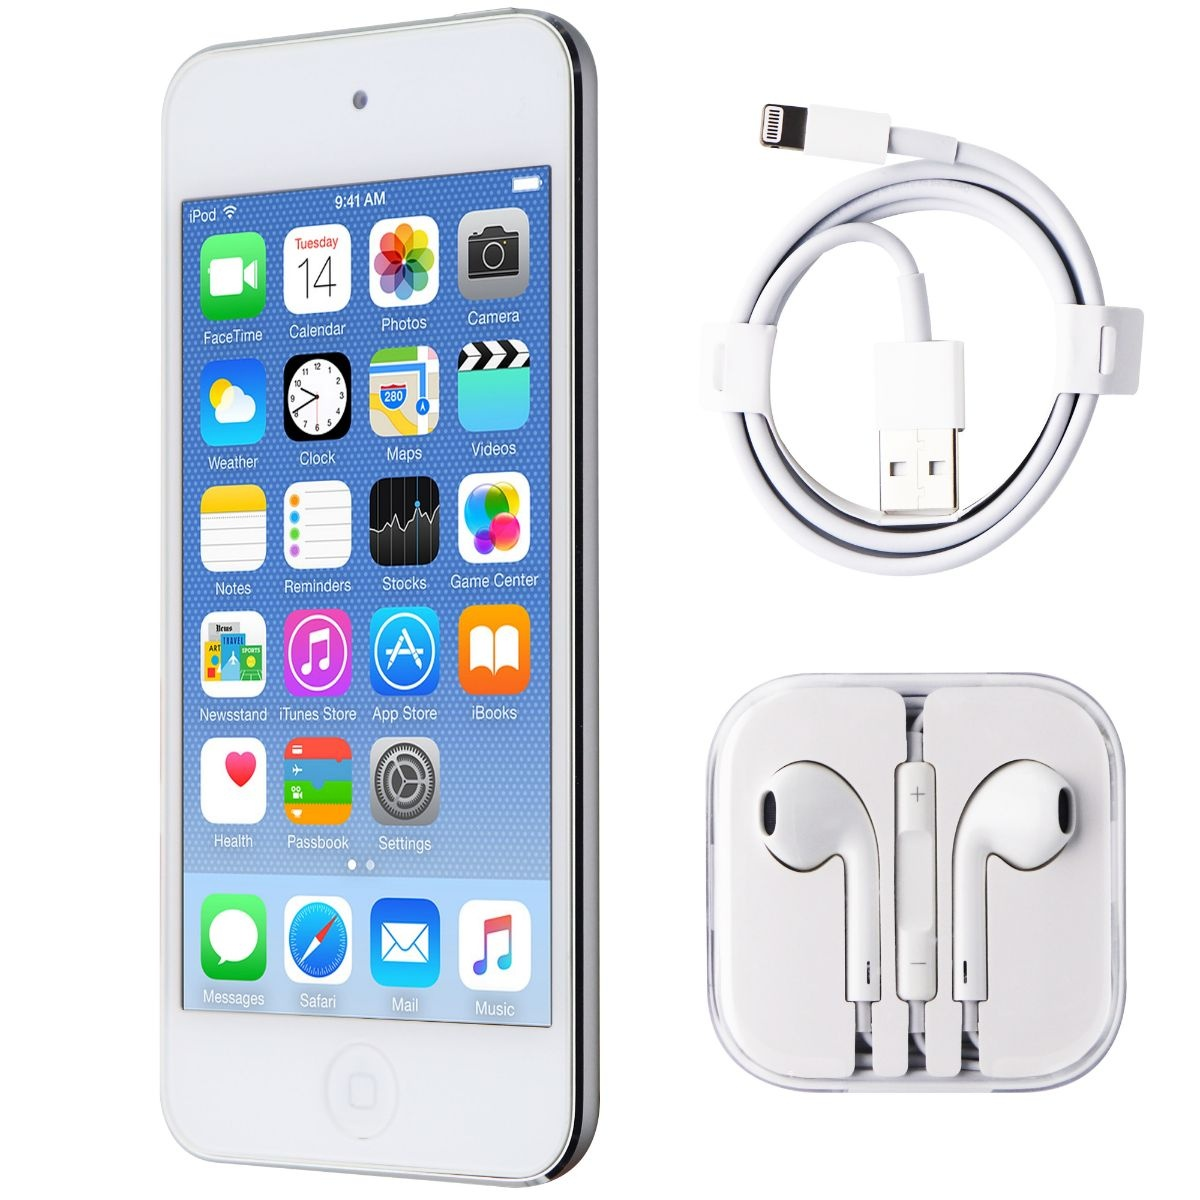 Apple iPod Touch (5th Generation) A1421 (MD720LL/A) Wi-Fi - 32GB White/Silver